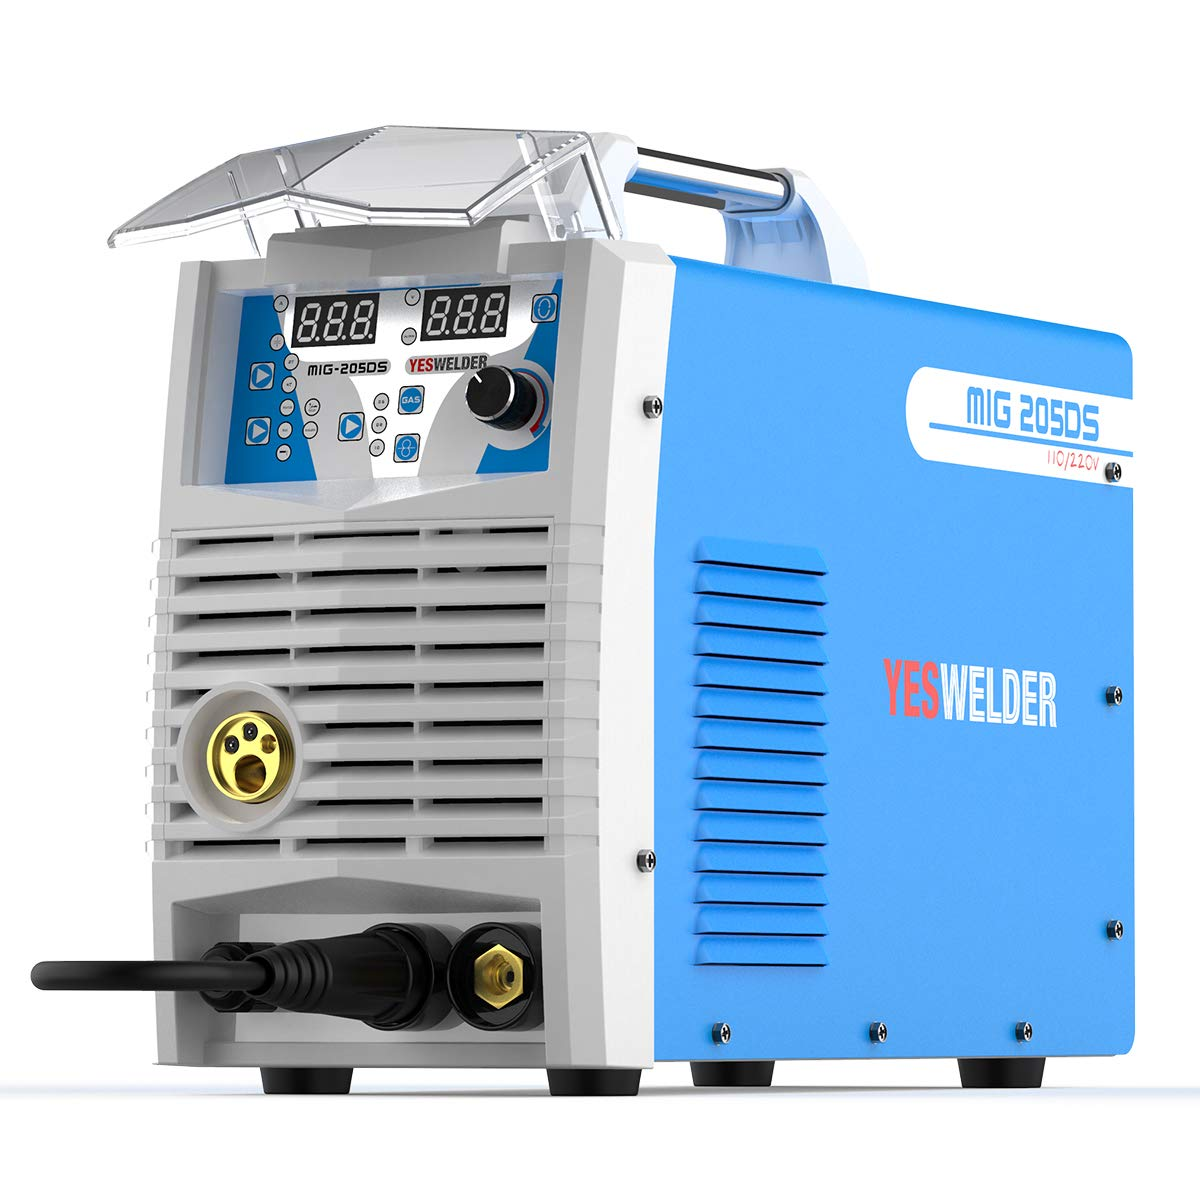 Mig Welder MIG-205 MIG TIG ARC Welding Machine Gas Gasless Welder 110/220V Dual Voltage Mig Welding Machine 3 in 1